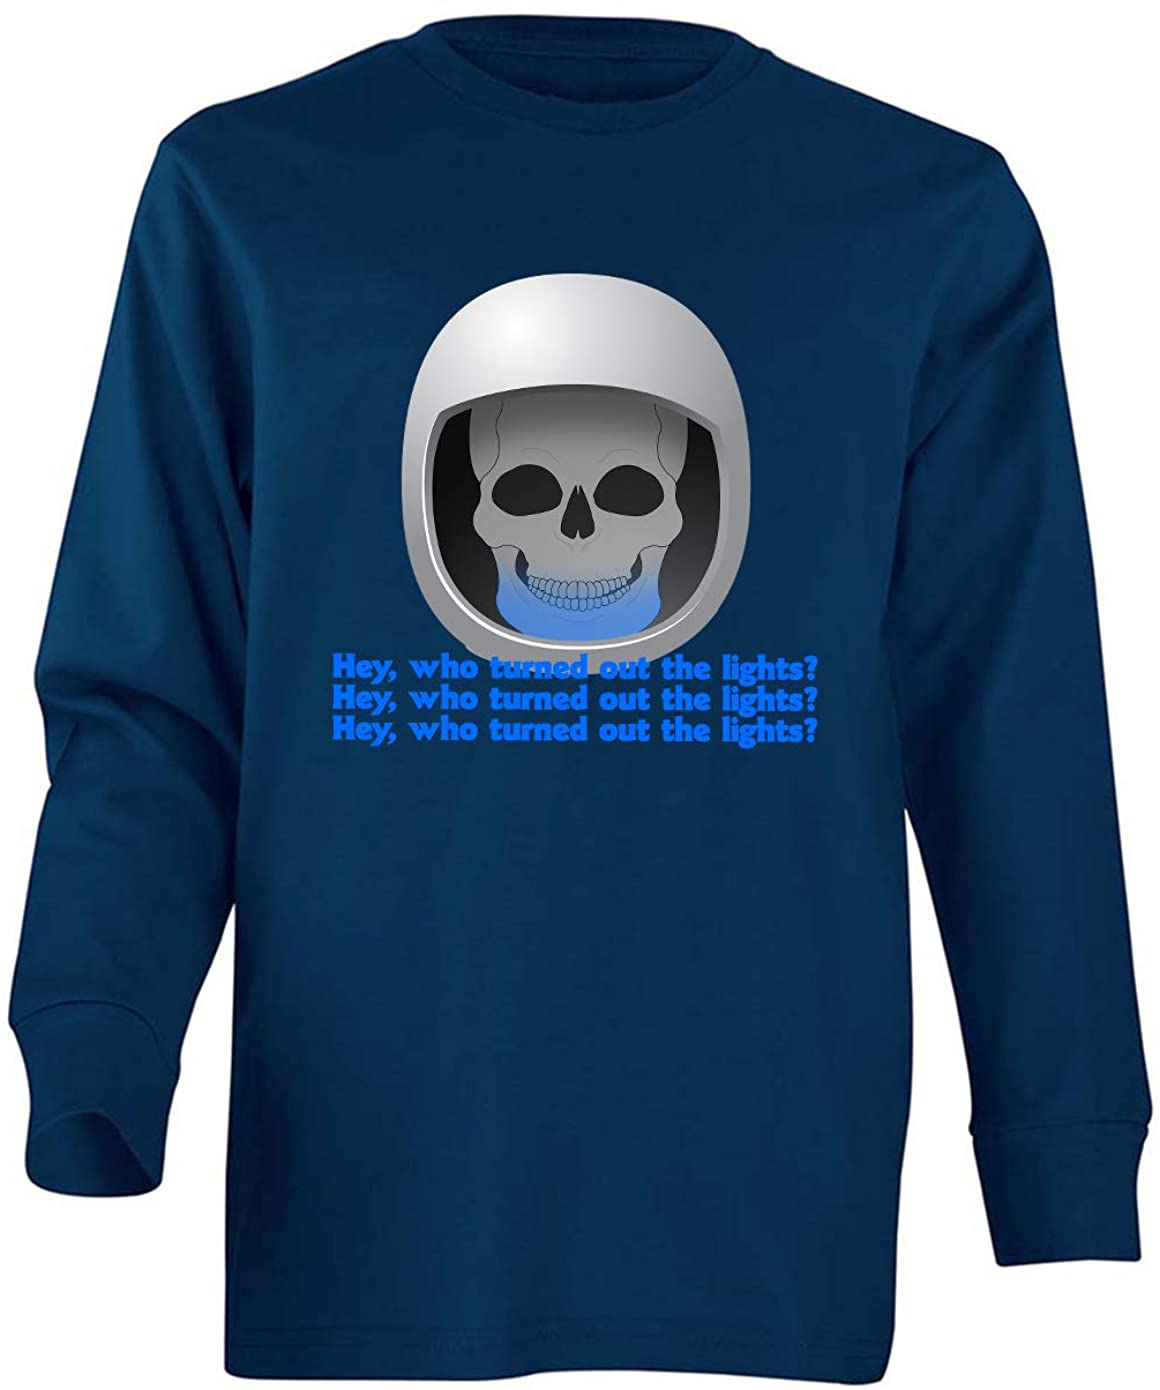 Tenacitee Boy's Youth Who Turned Out The Lights Long Sleeve